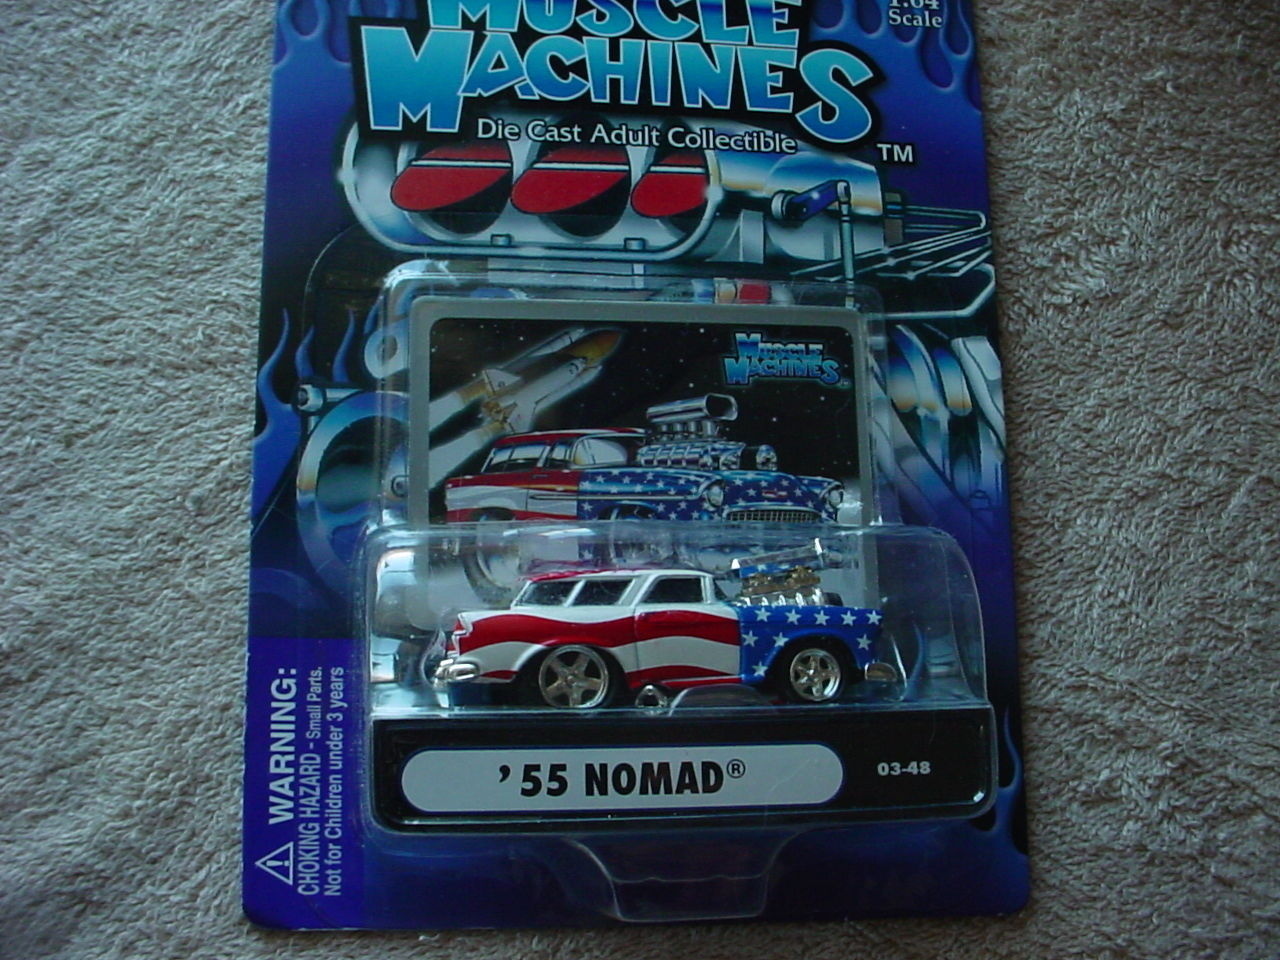 MUSCLE MACHINES USA TRIBUTE '55 NOMAD 03-48 BLOWN MIP FREE USA SHIPPING - $11.29